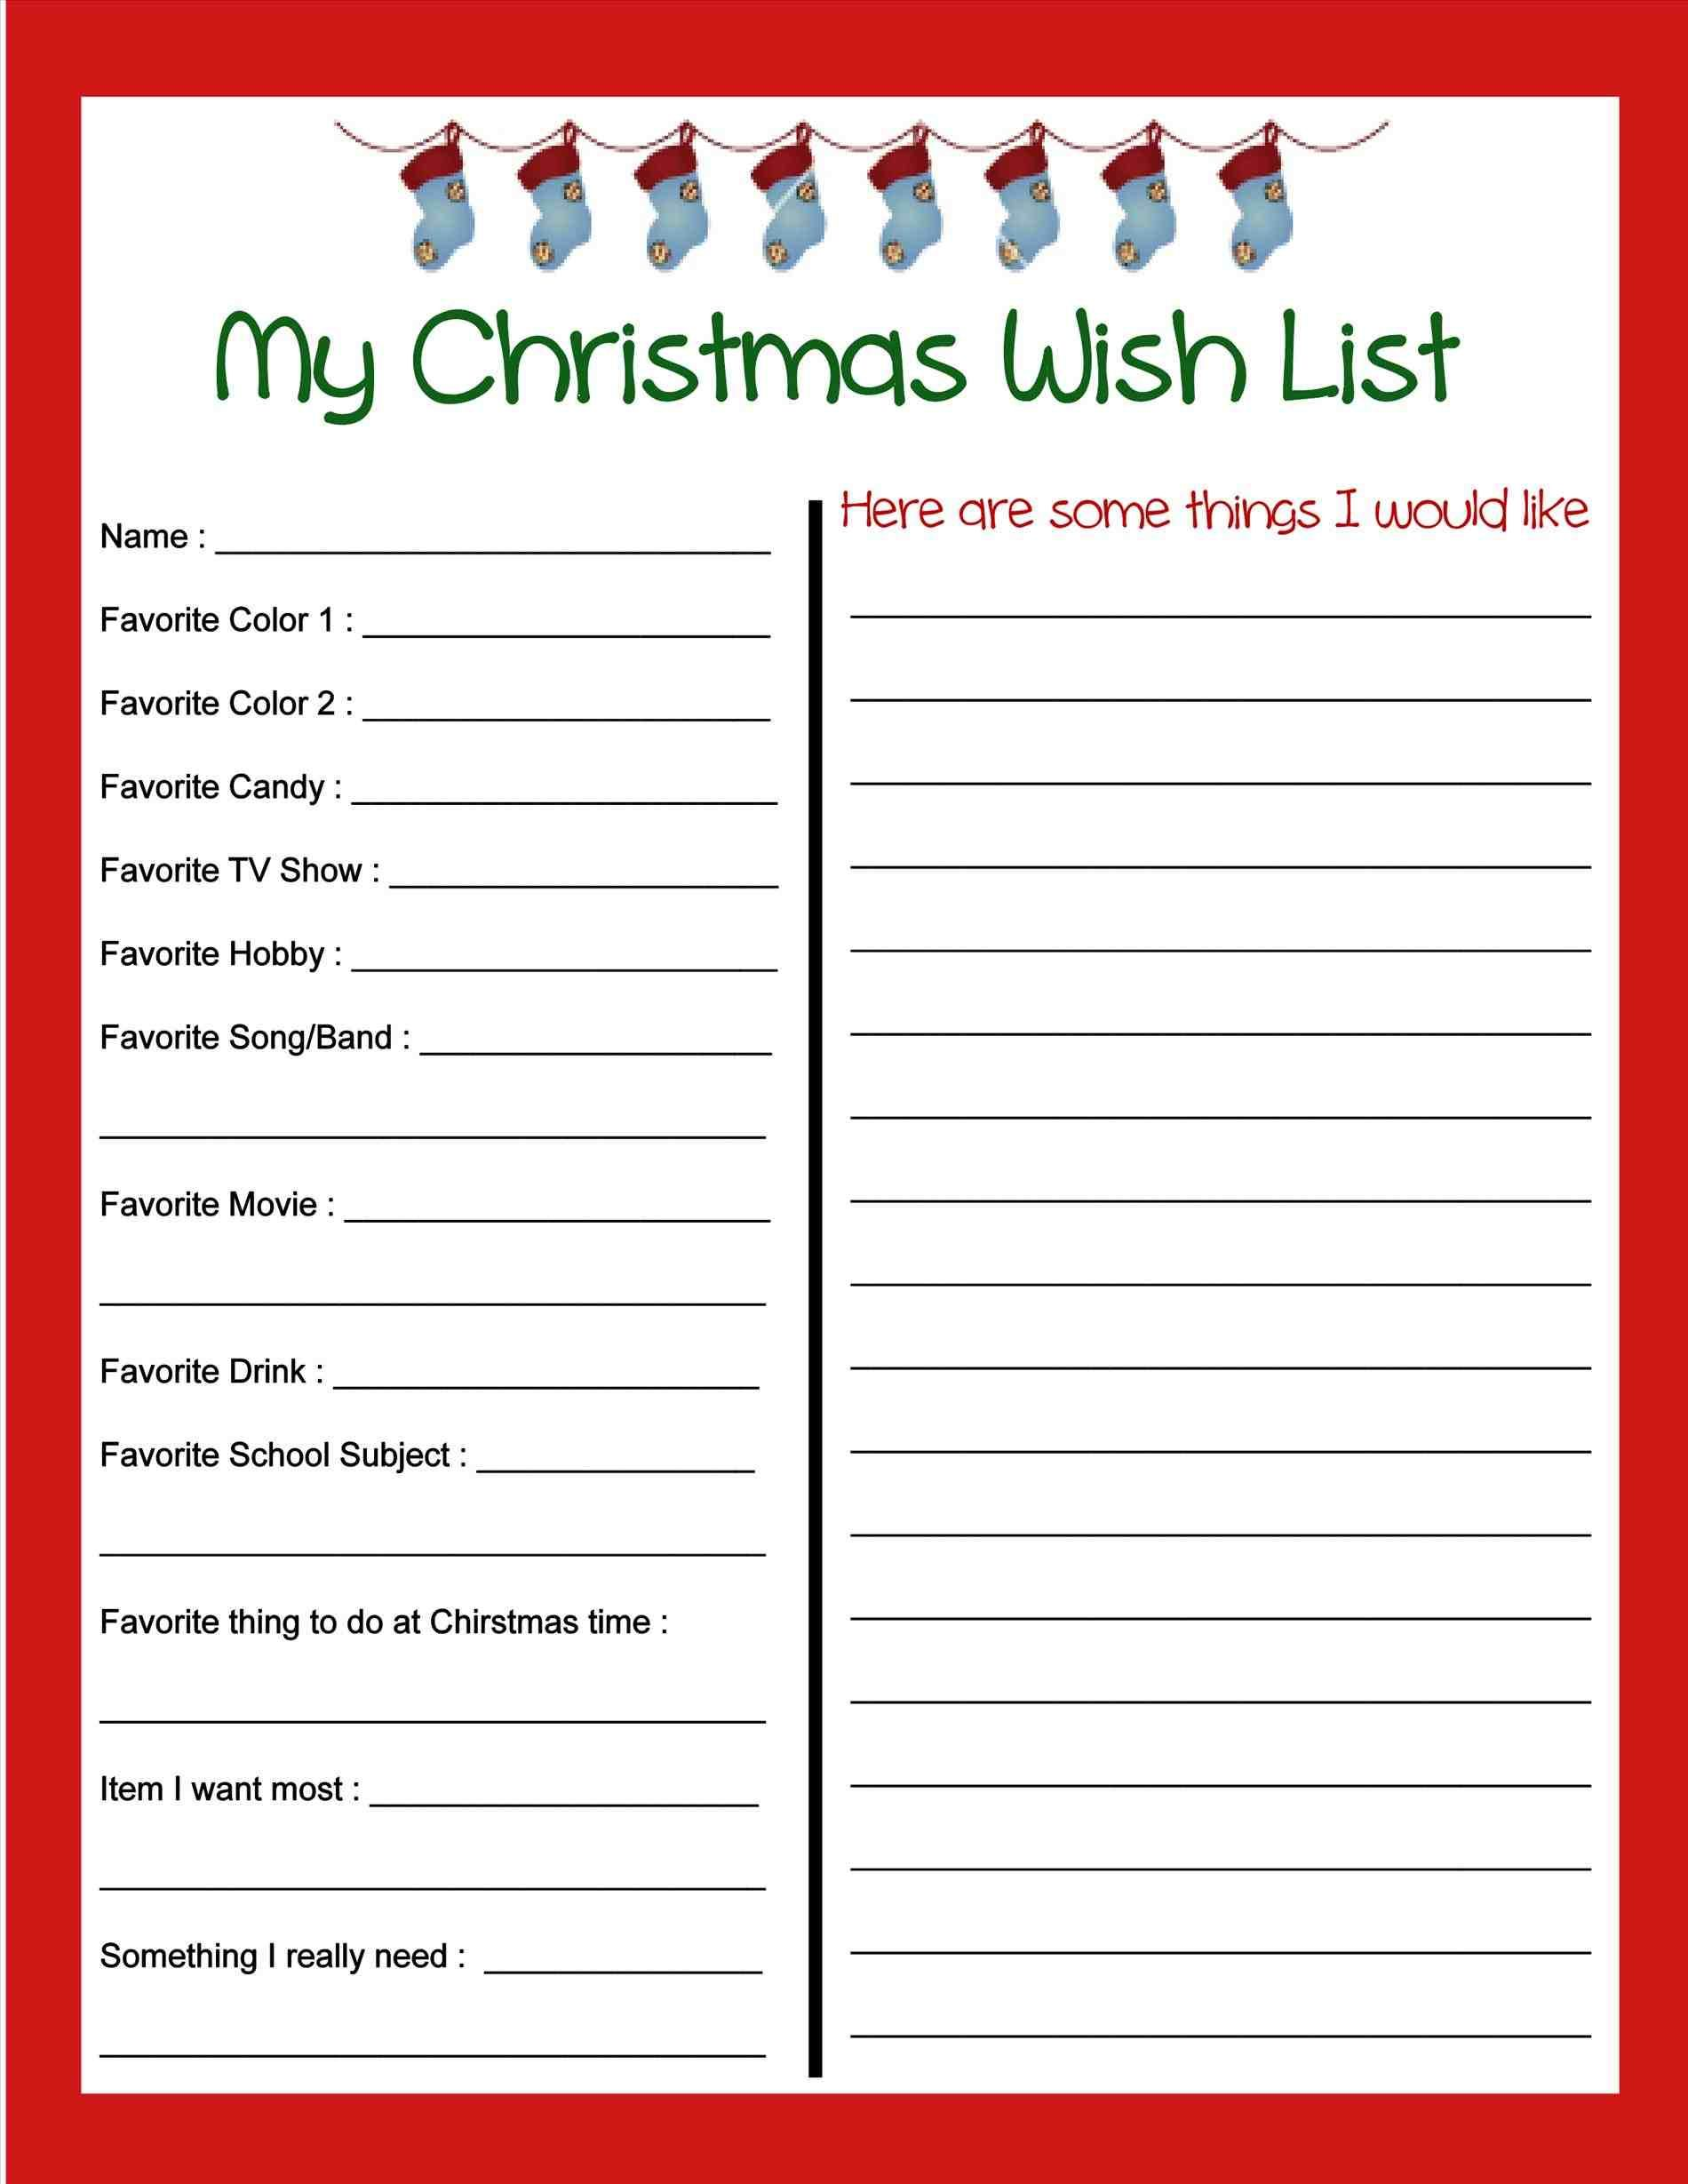 New Post My Christmas Wish List Template  Decors Ideas